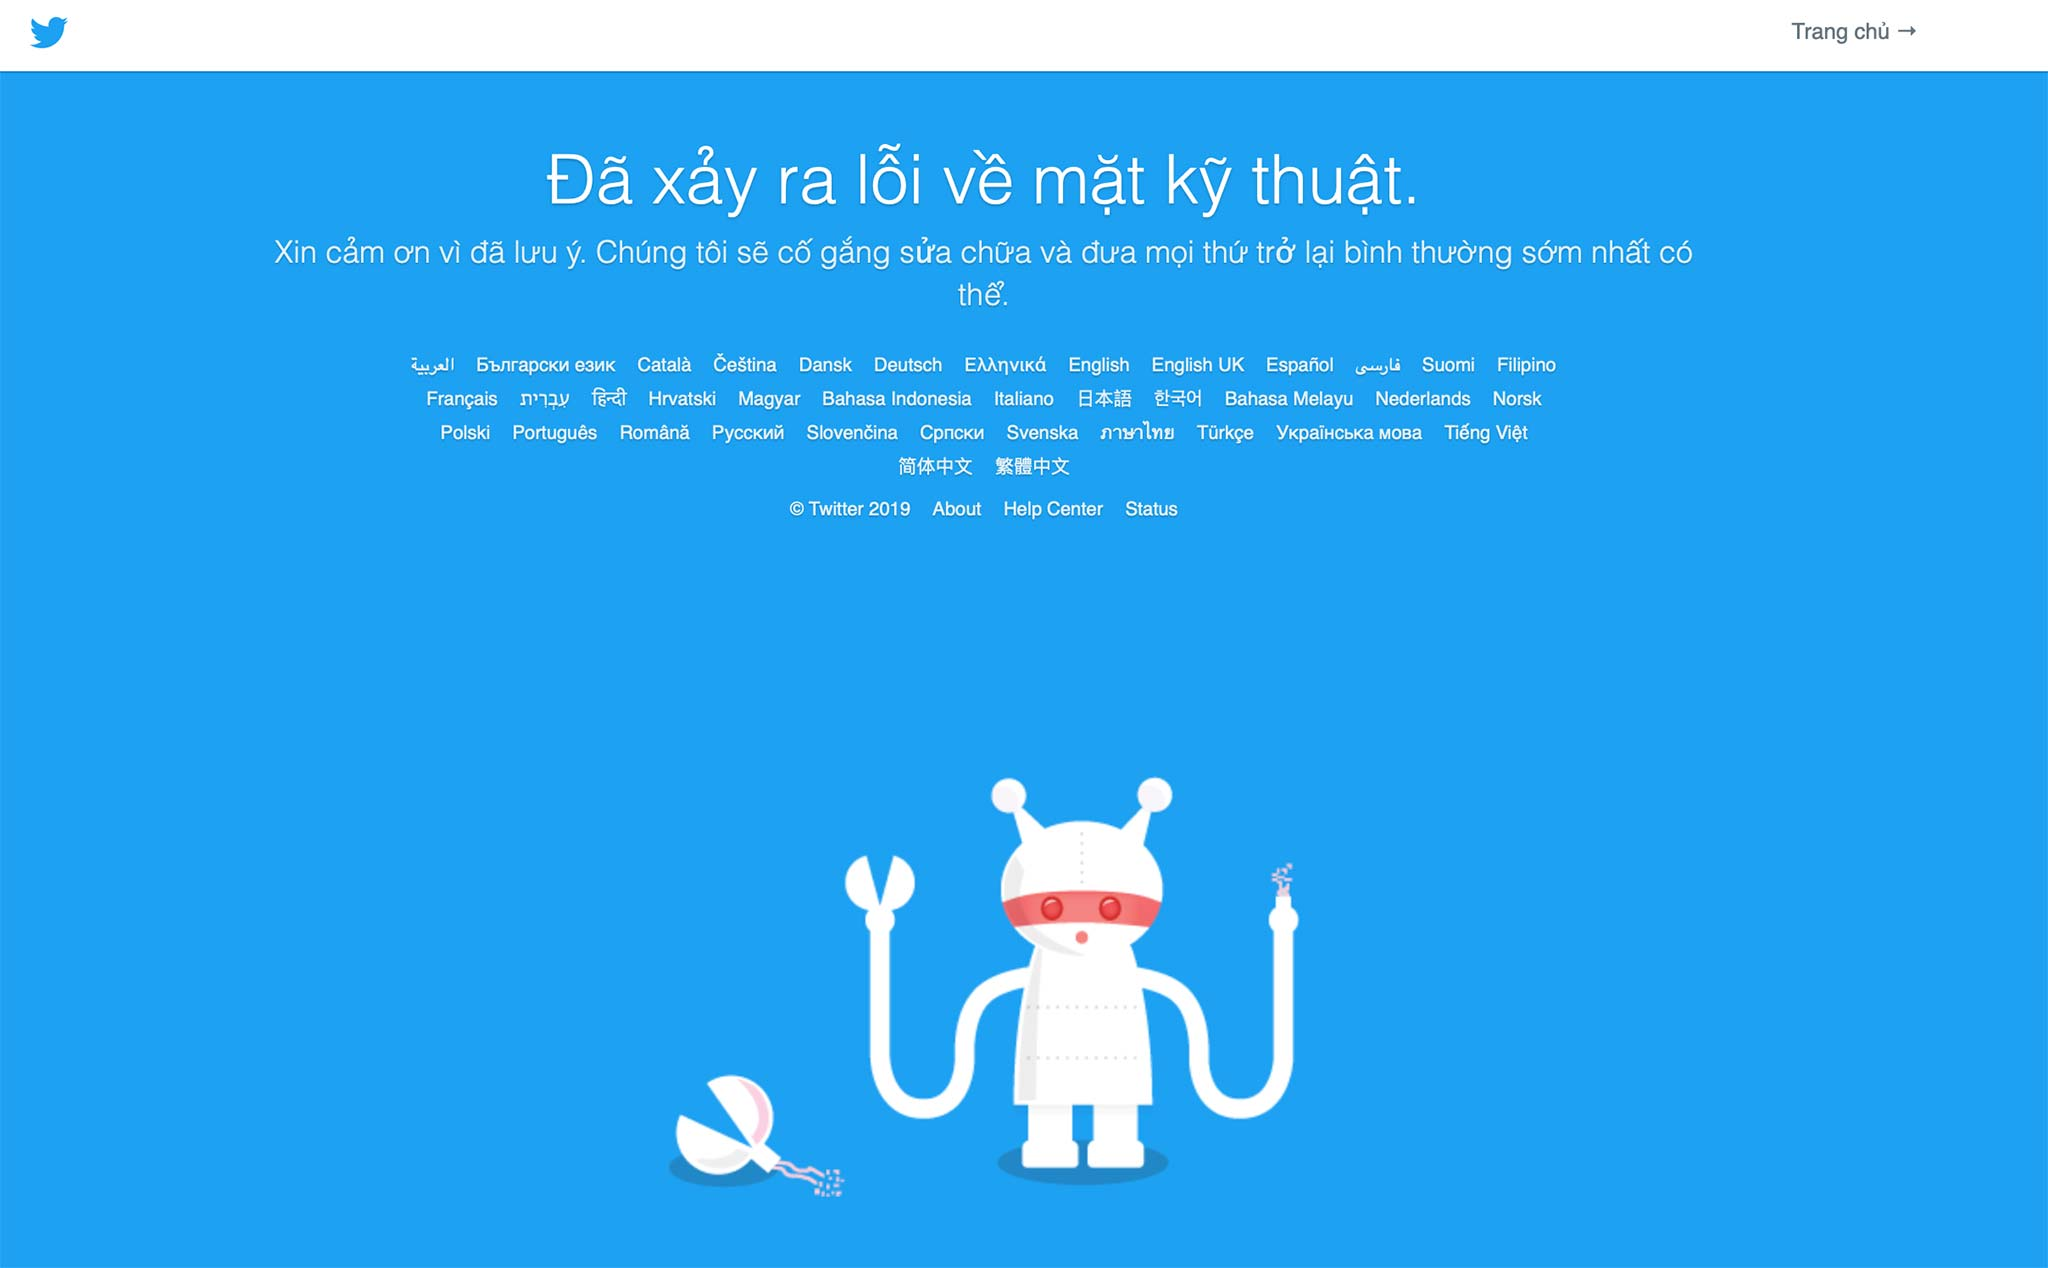 This morning, Twitter died on a global scale for almost 2 hours